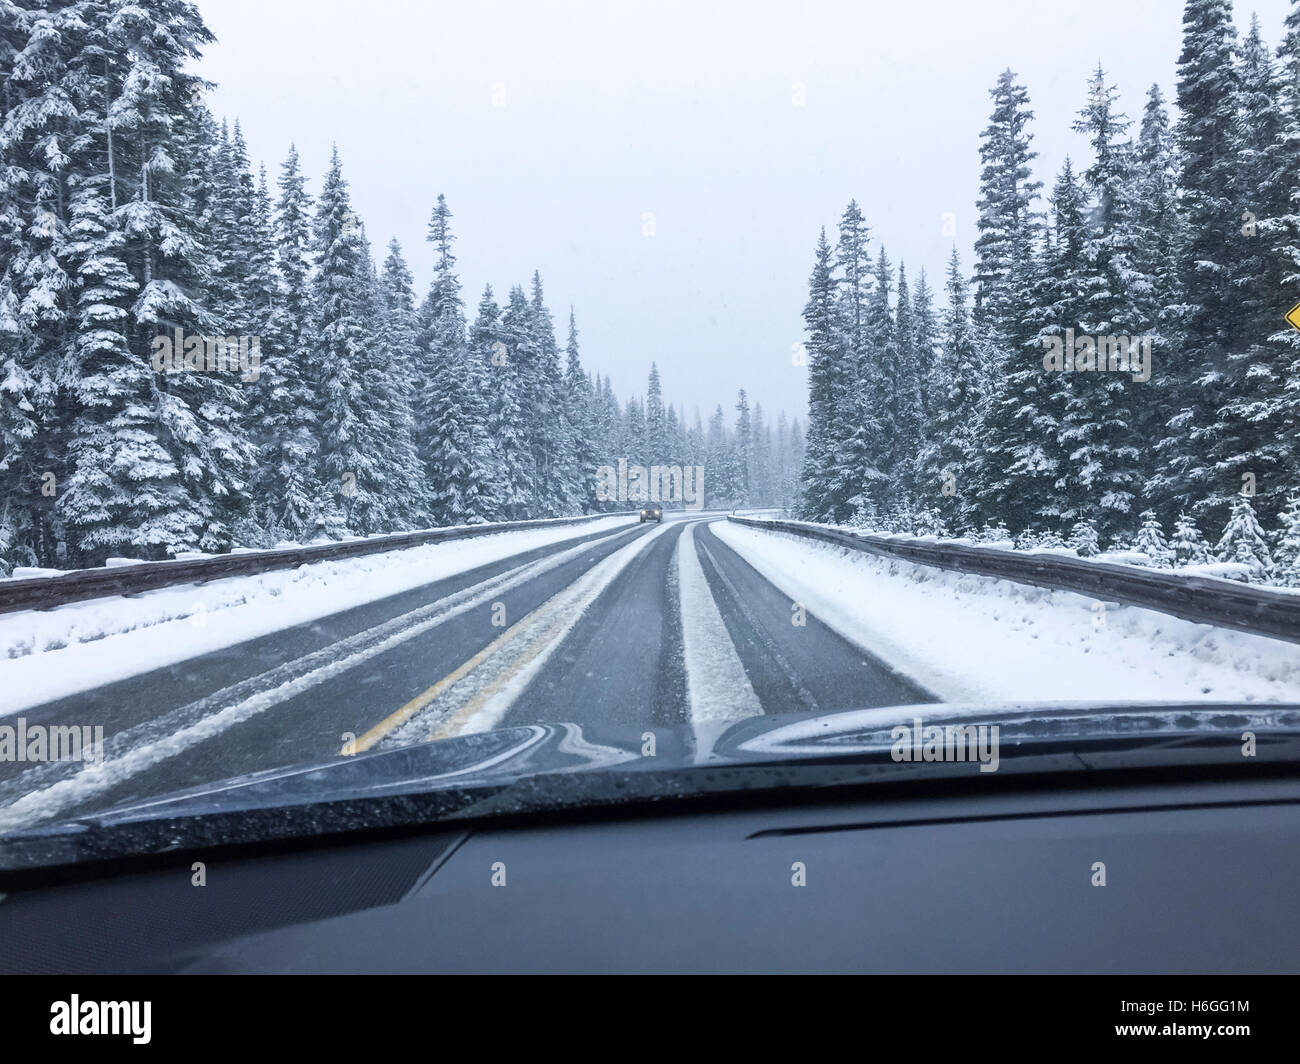 Driver's point of view viewpoint looking through car windshield of snowy road in winter driving - Stock Image